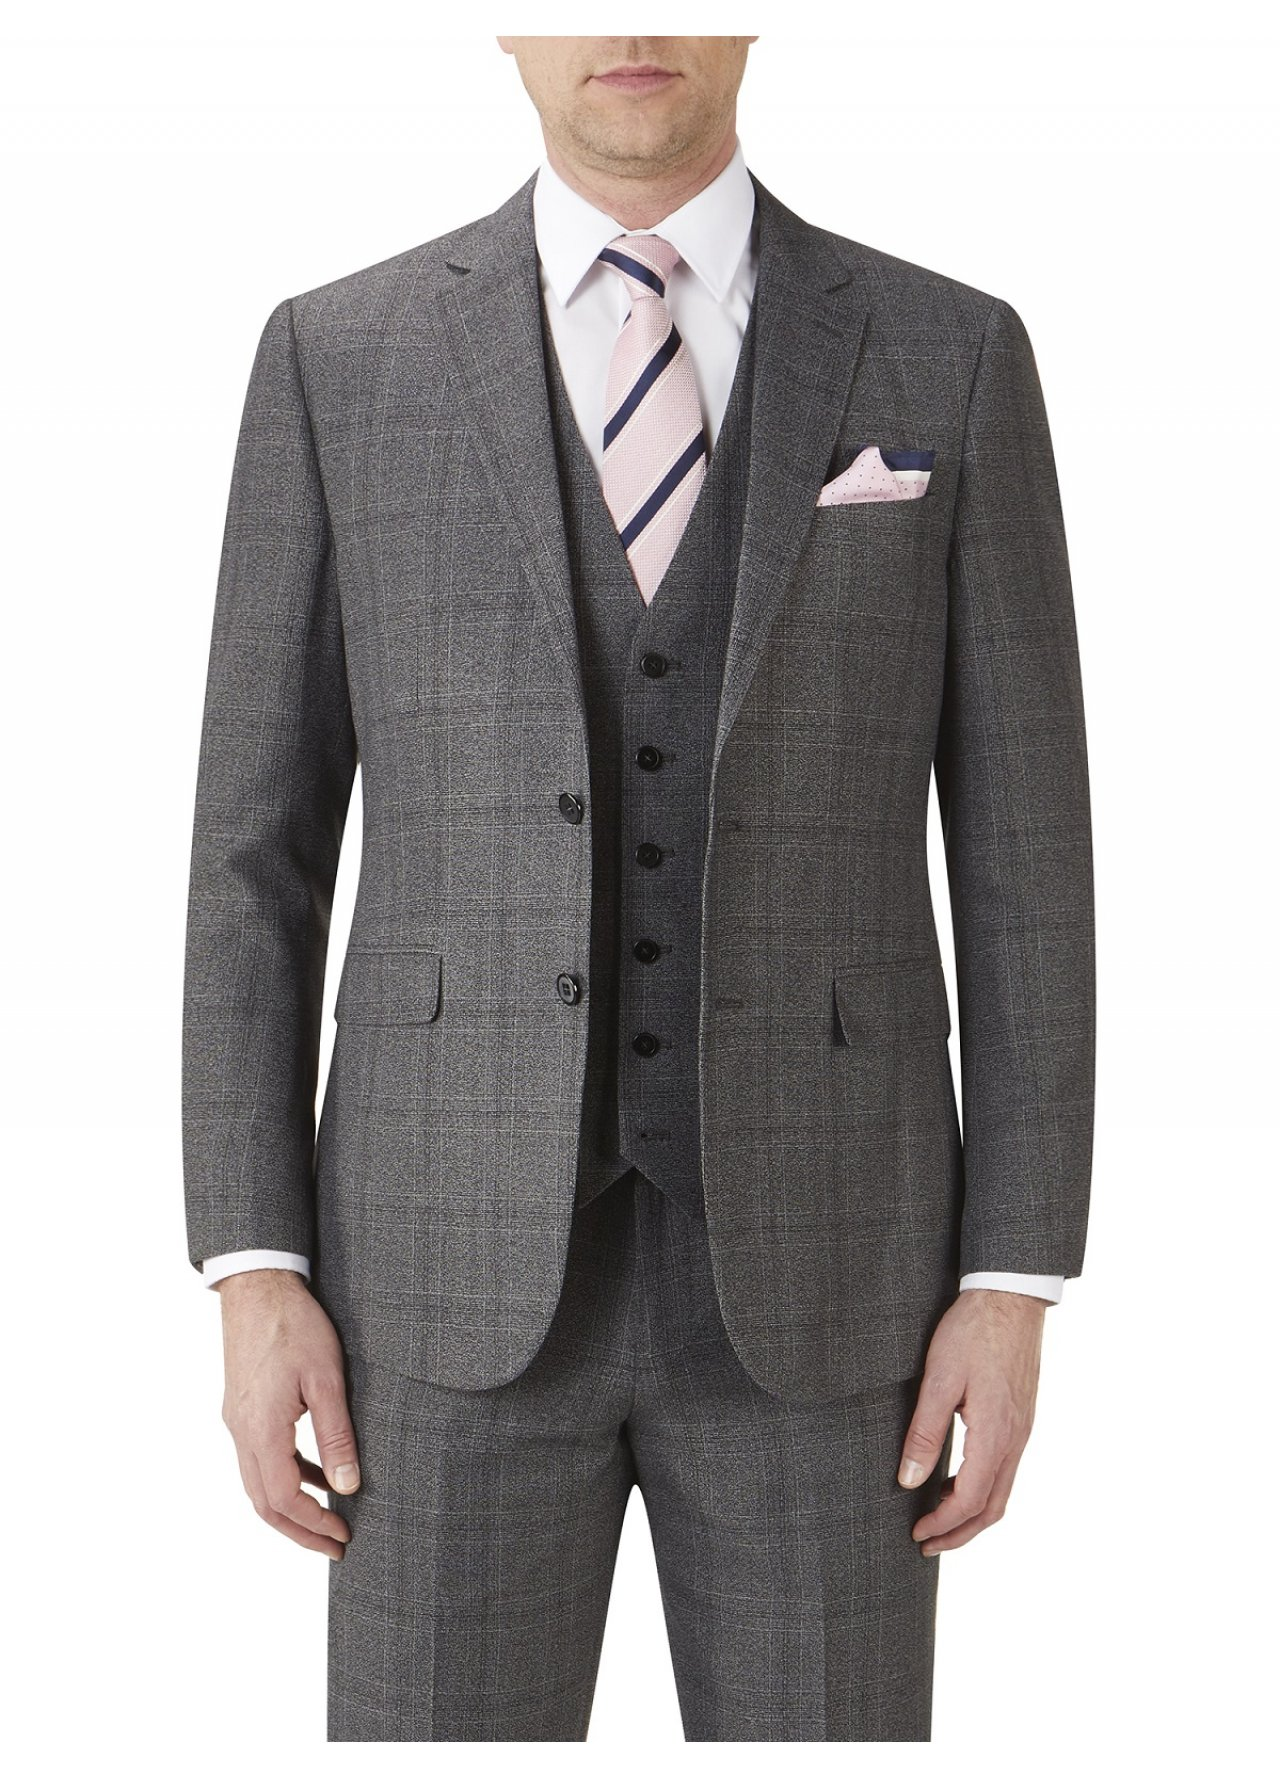 Skopes - Theodore - Grey Heritage - Tweed - Check - 3 Piece Suit